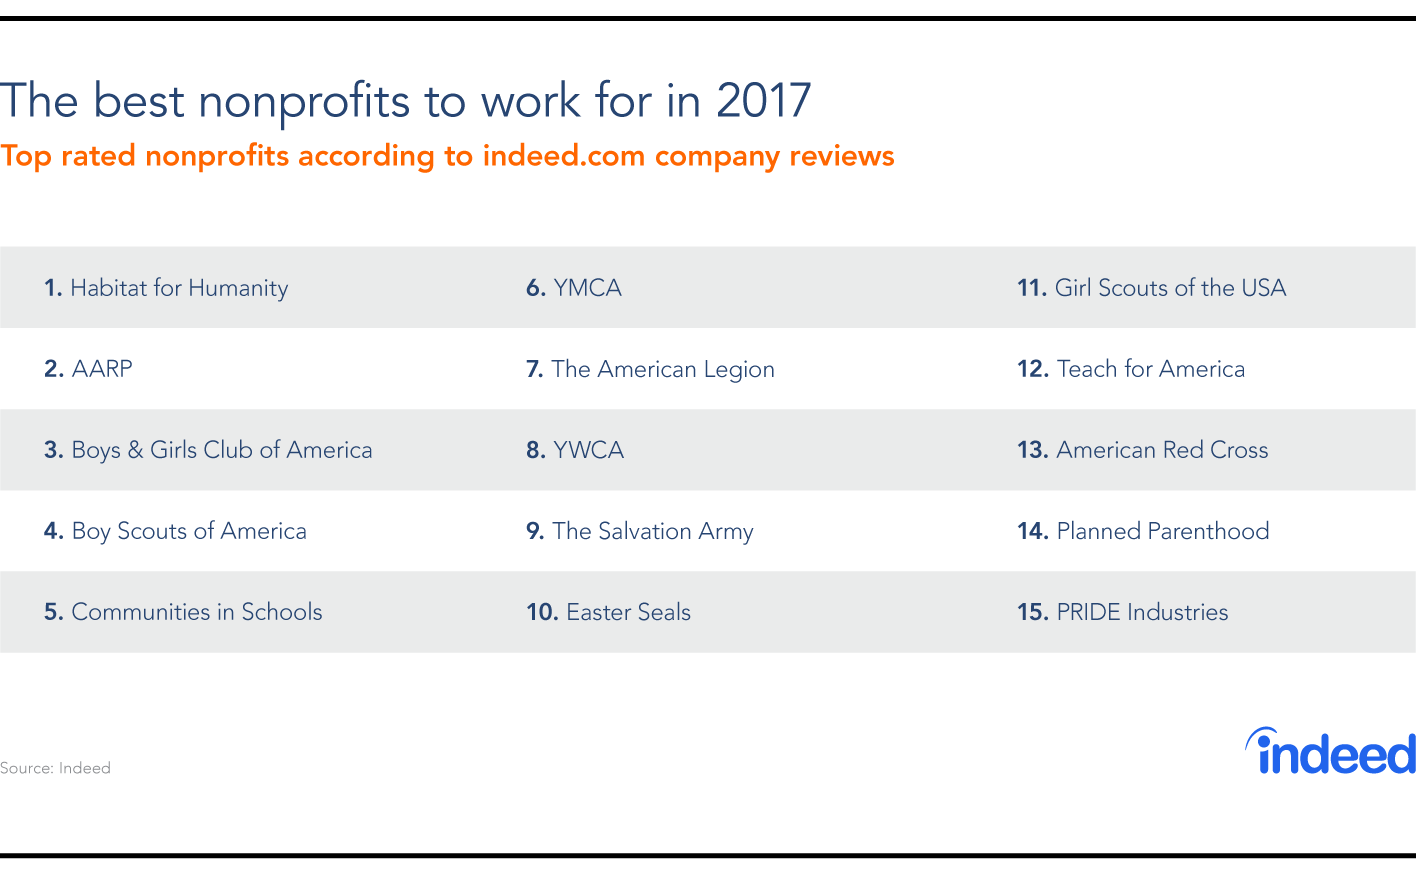 Table compiled of the top 15 nonprofits to work for in 2017, with Habitat for Humanity topping the list.